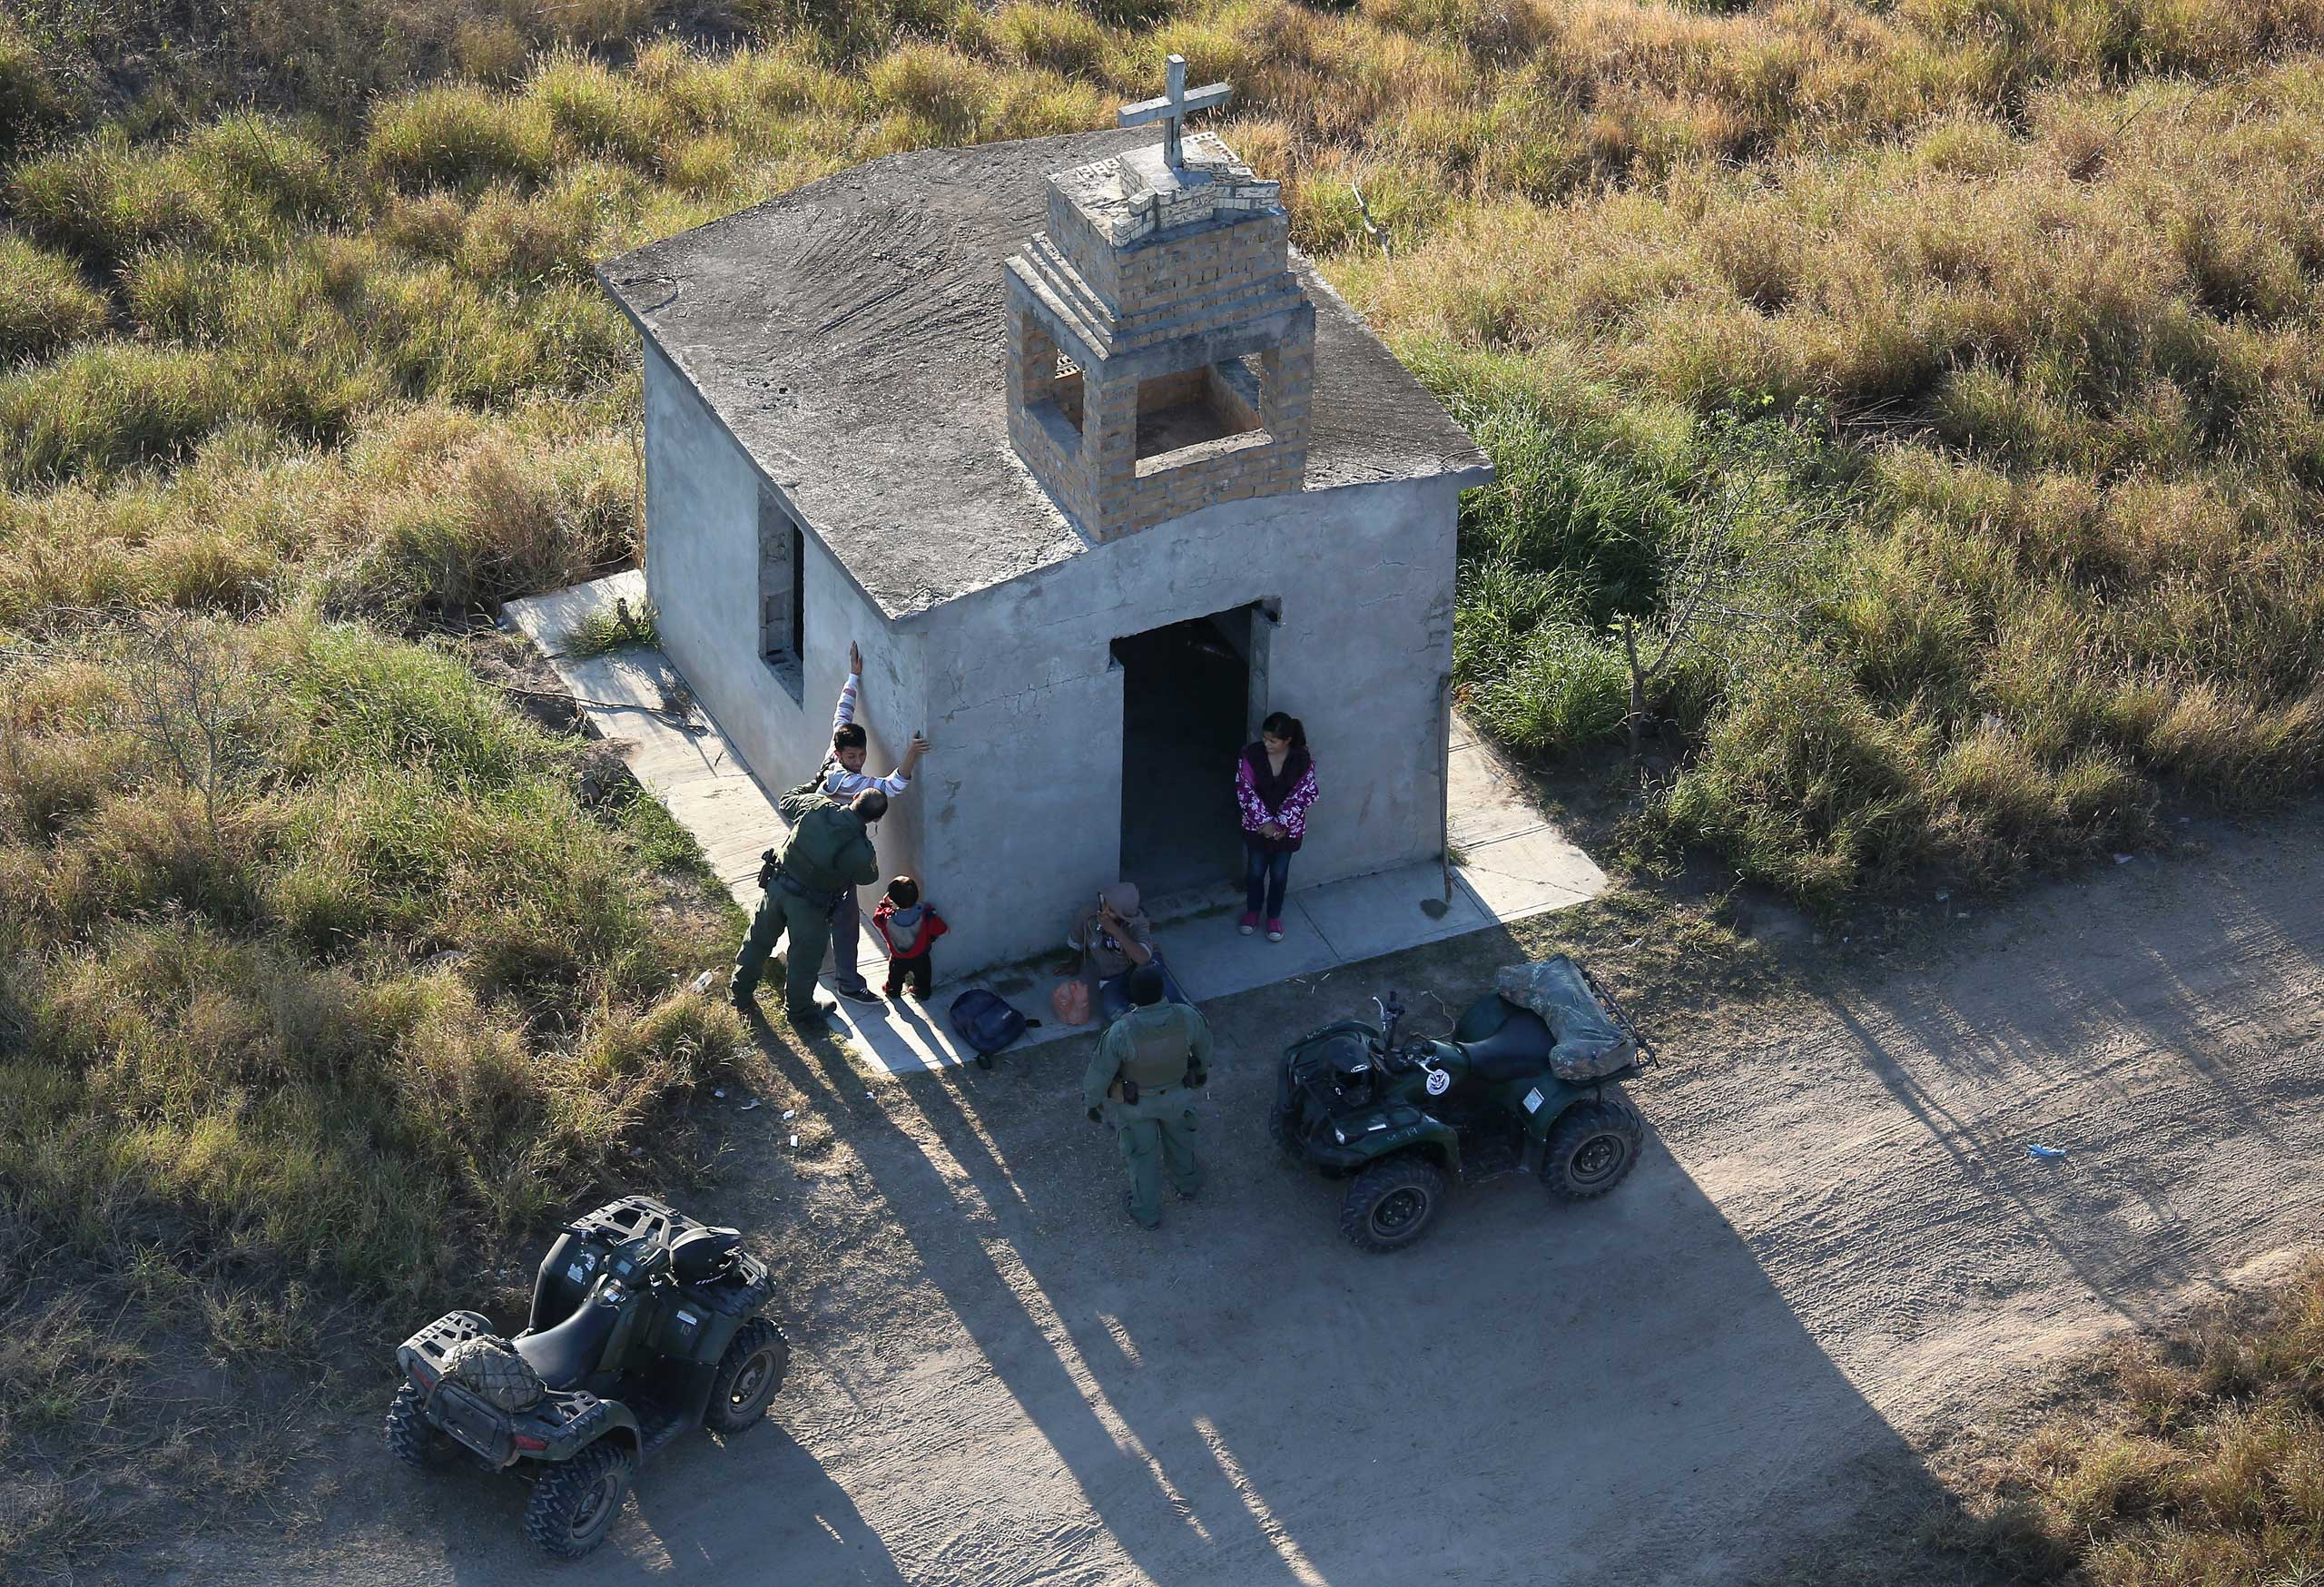 U.S. Border Patrol agents search a migrant family after they crossed the U.S.-Mexico border near Rio Grande City, Texas, on Dec. 9, 2015.